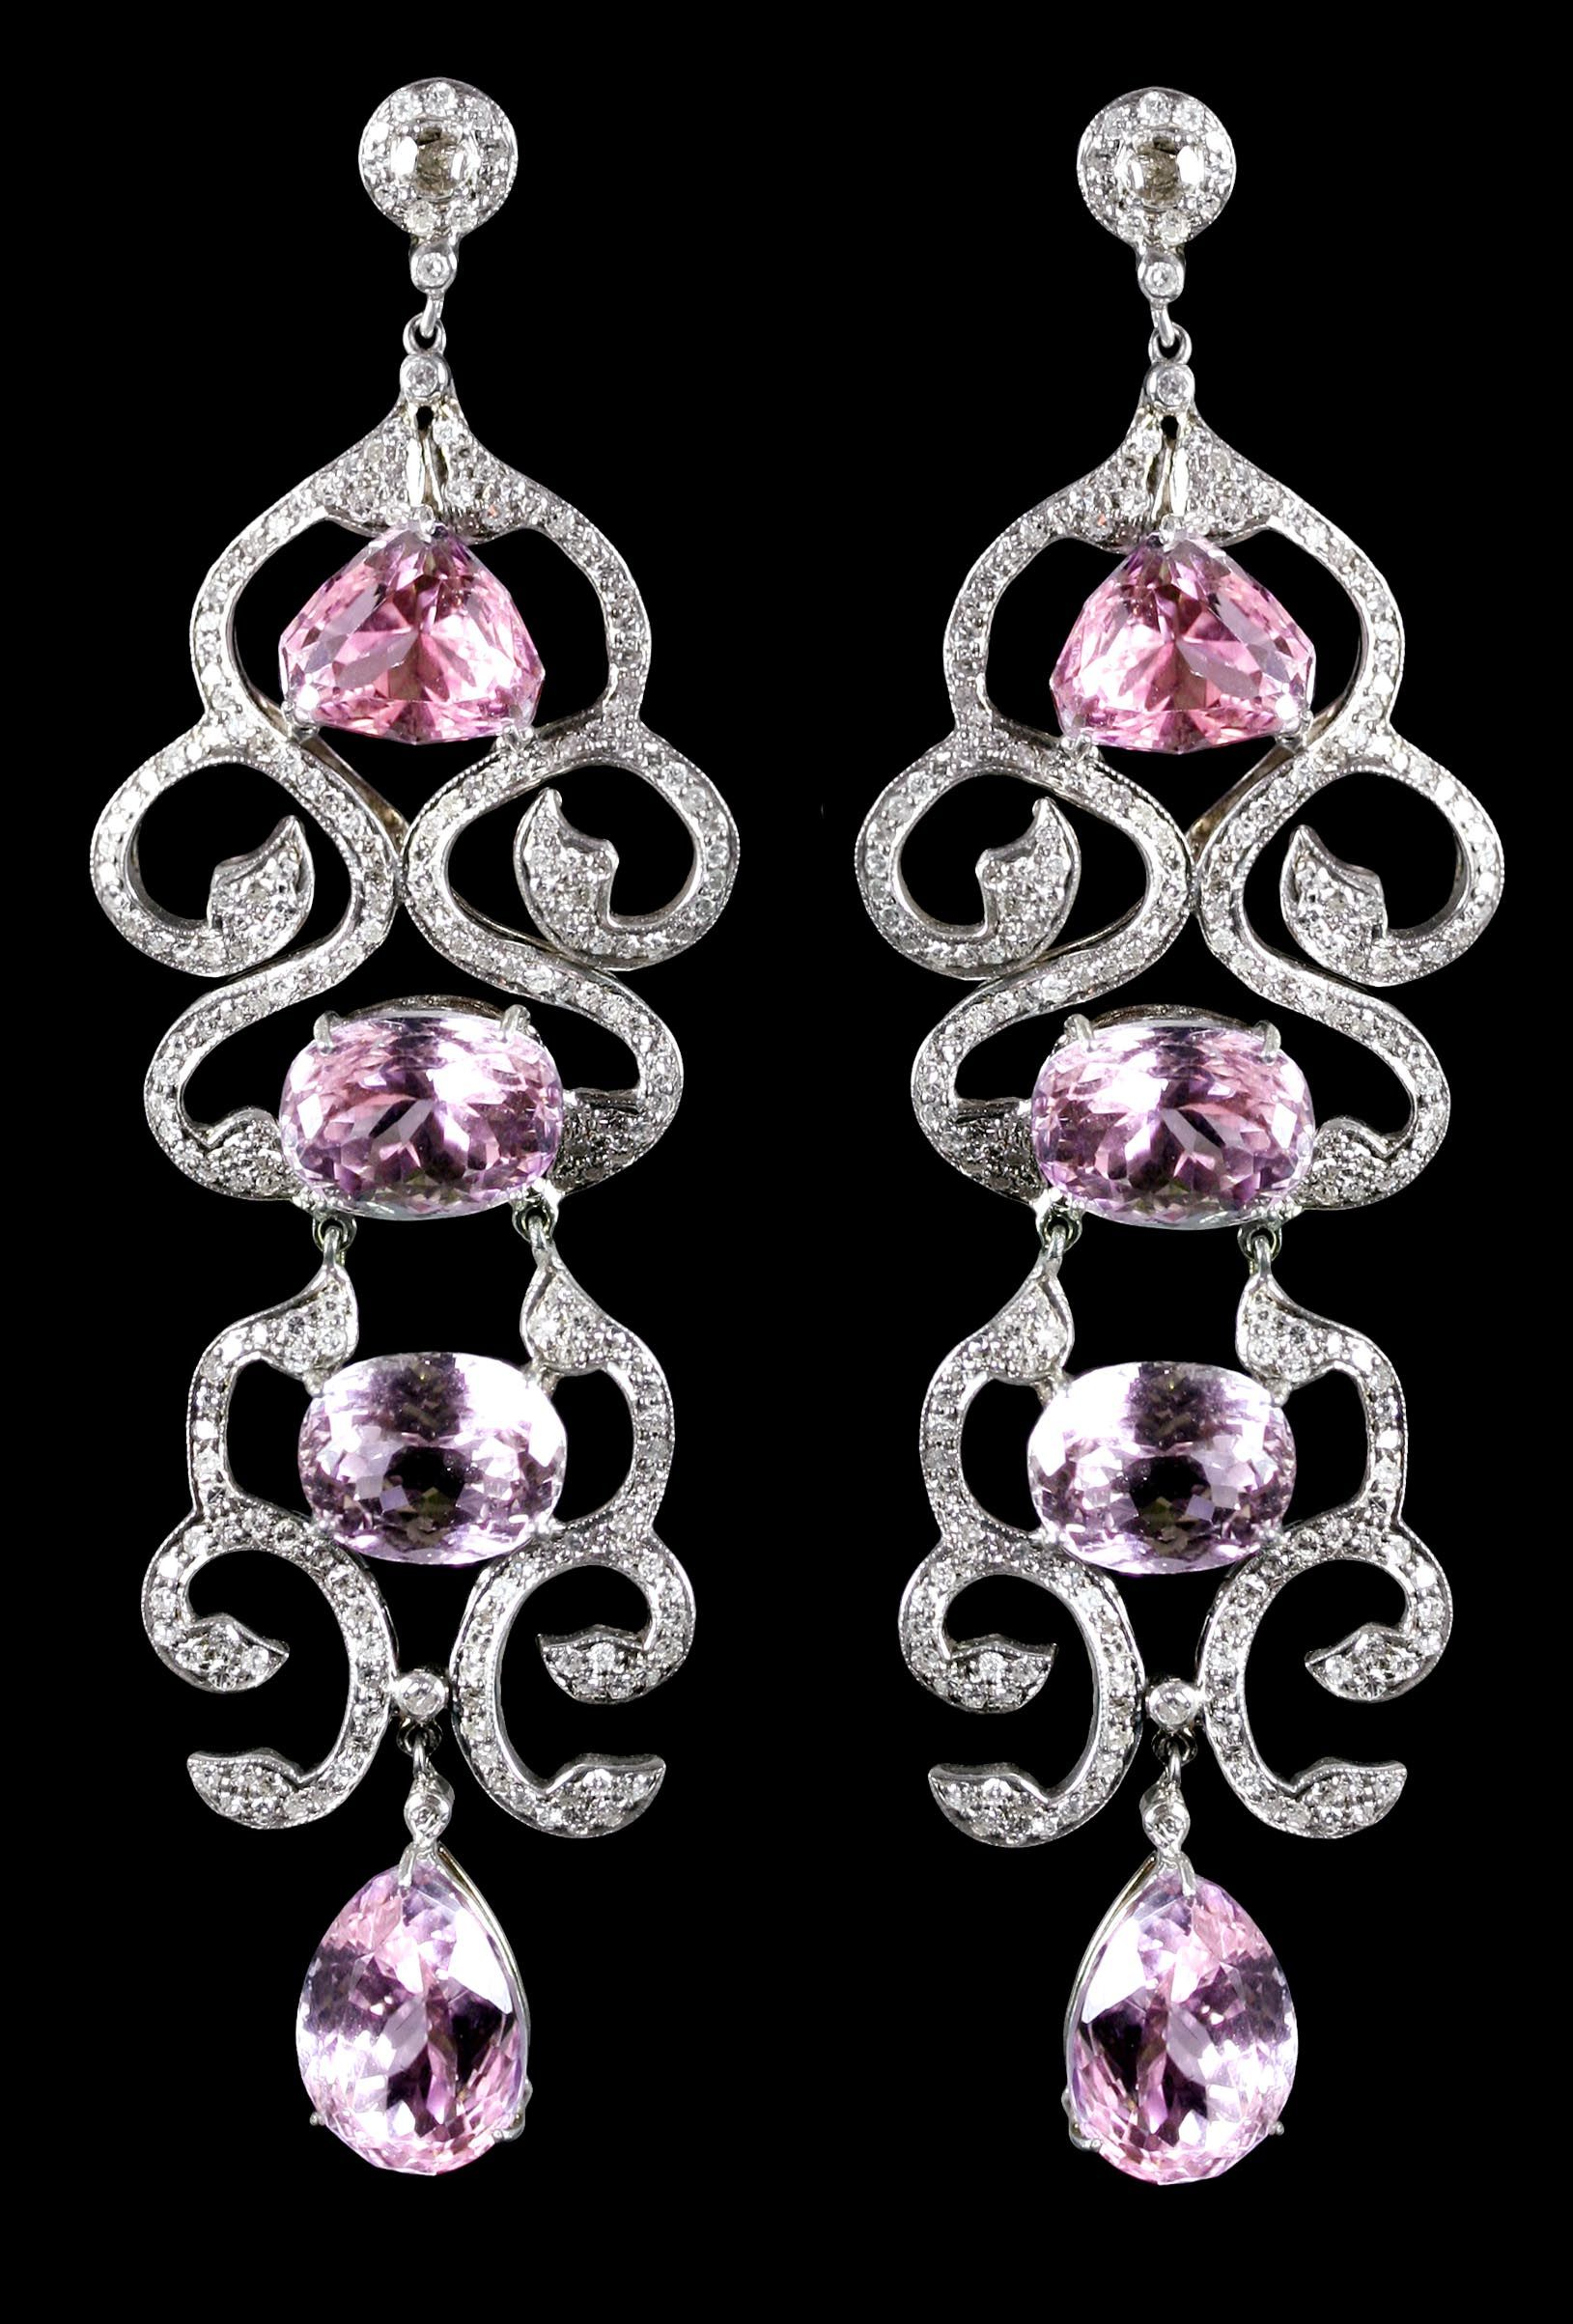 earrings loading kunzite lewis renee operandi white by large gold moda